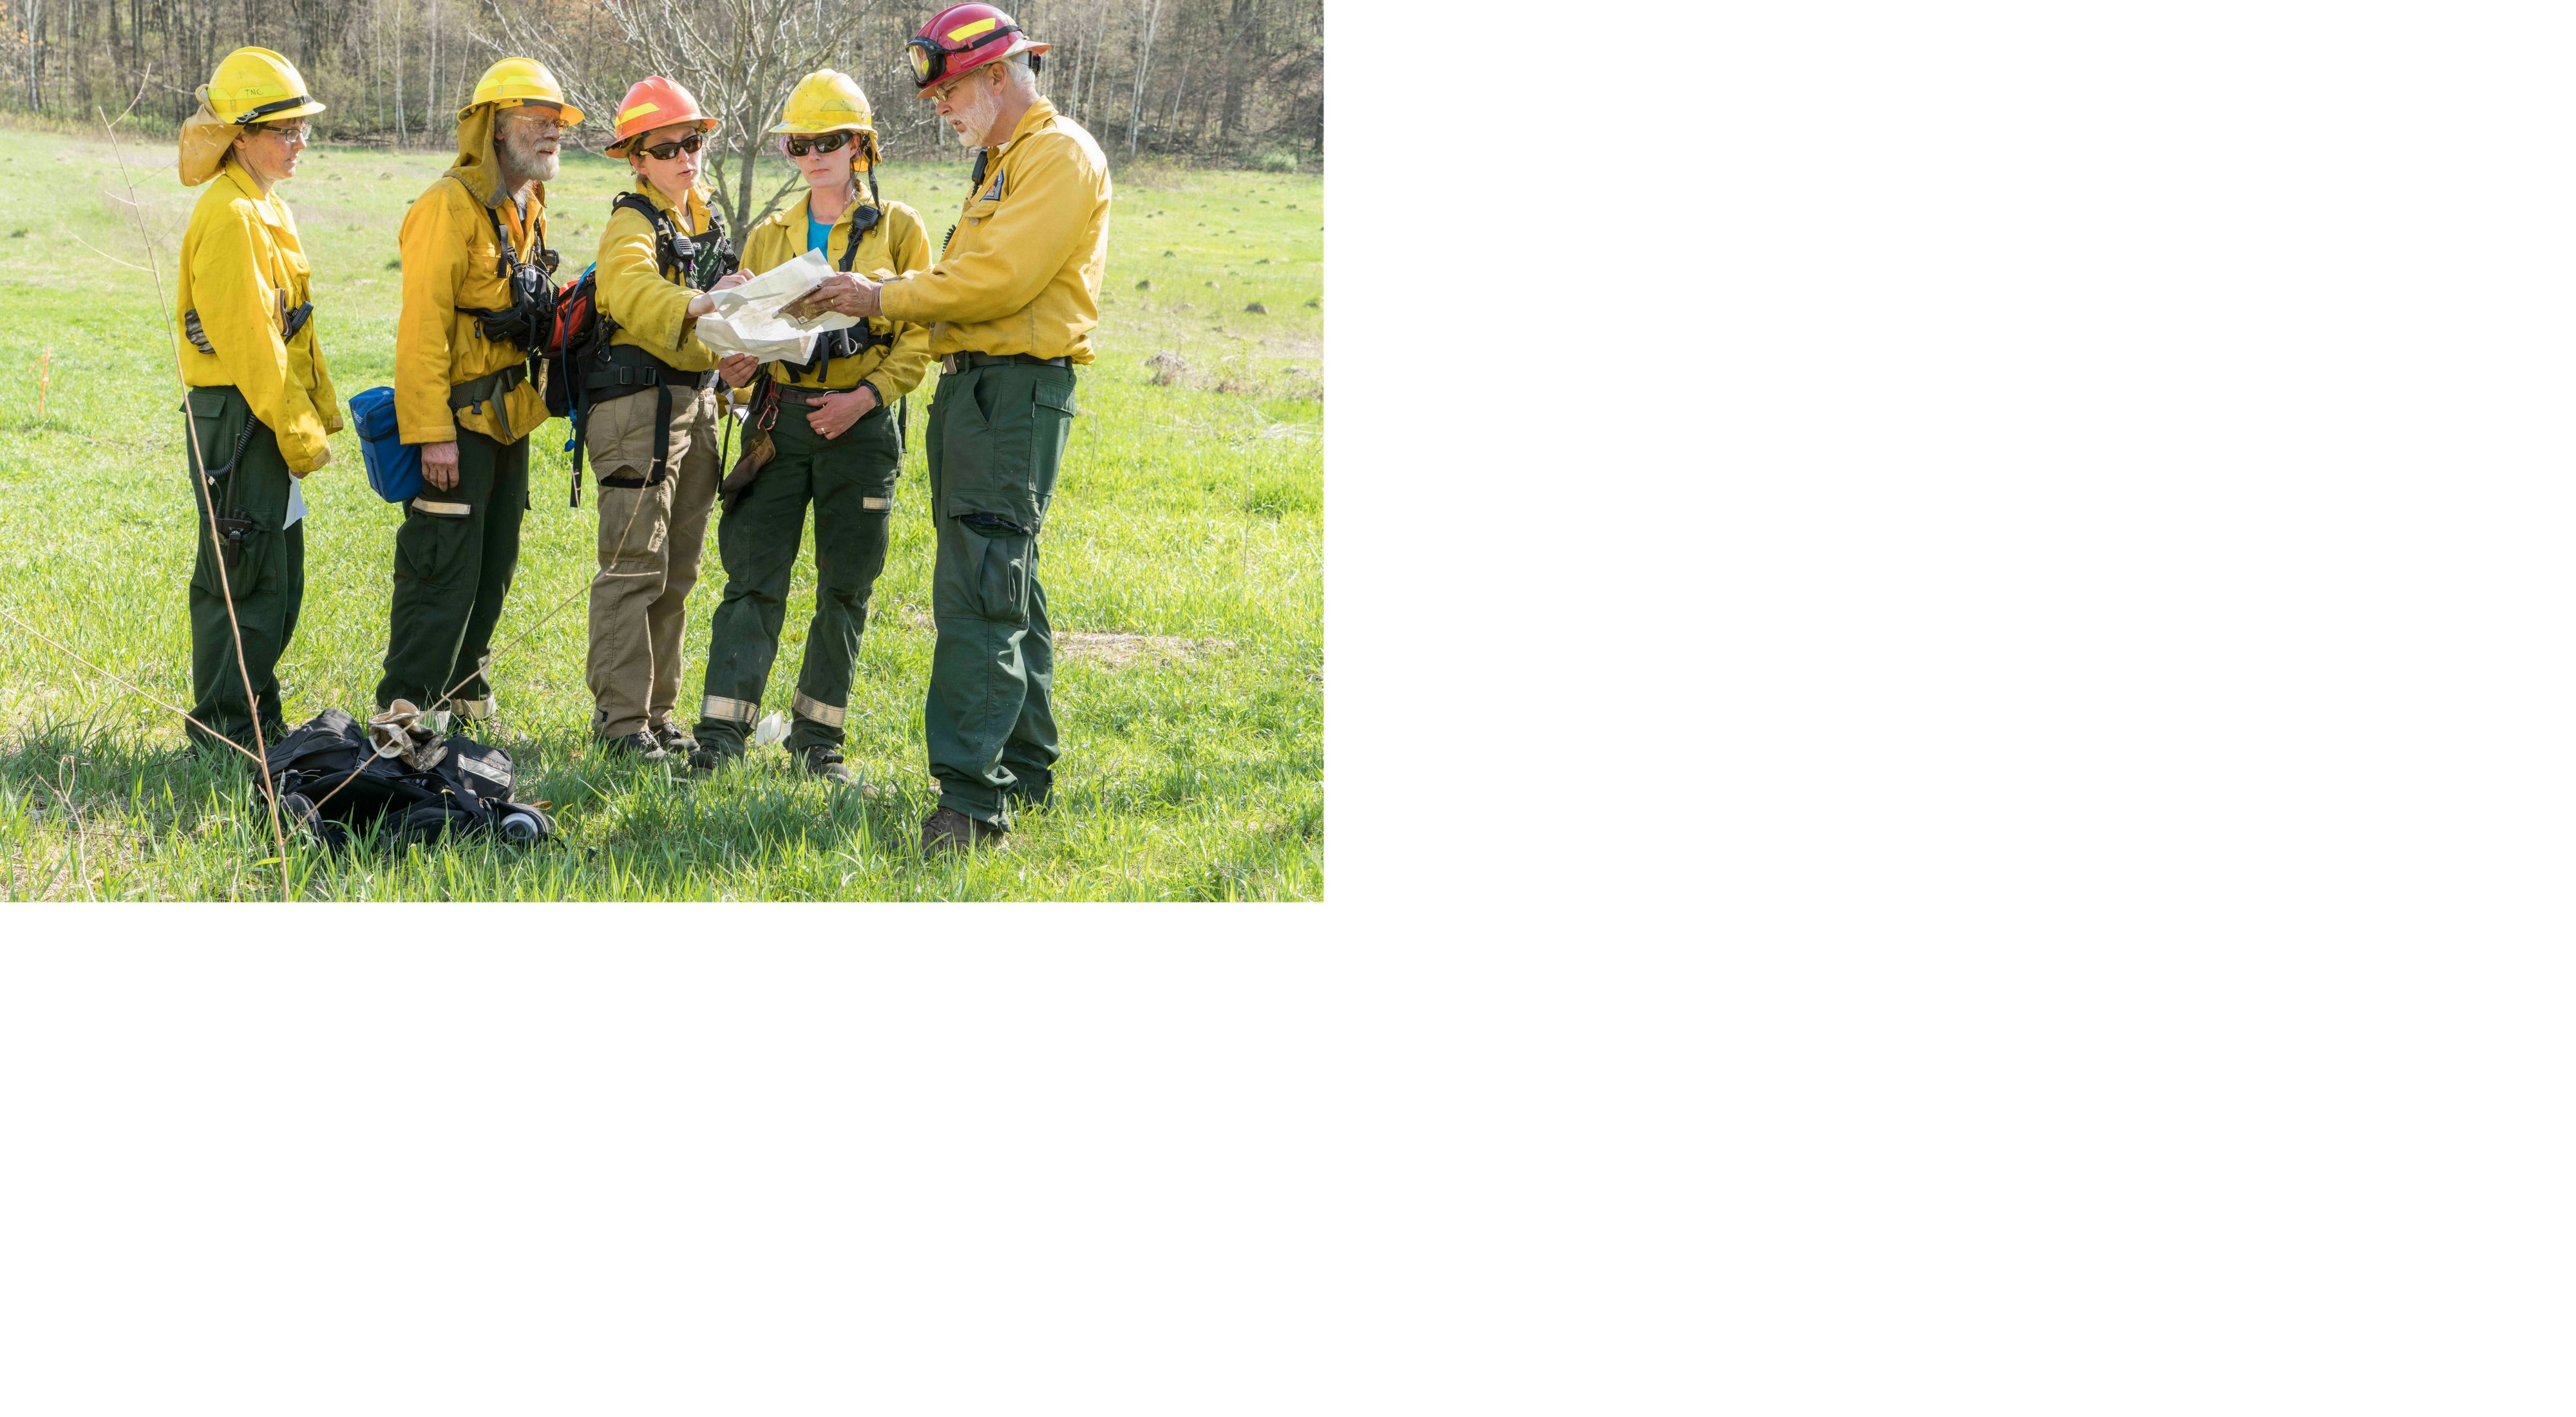 Five people dressed in yellow Nomex suits, helmets, goggles and other fire gear consult maps while working on a prescribed fire in Wisconsin.